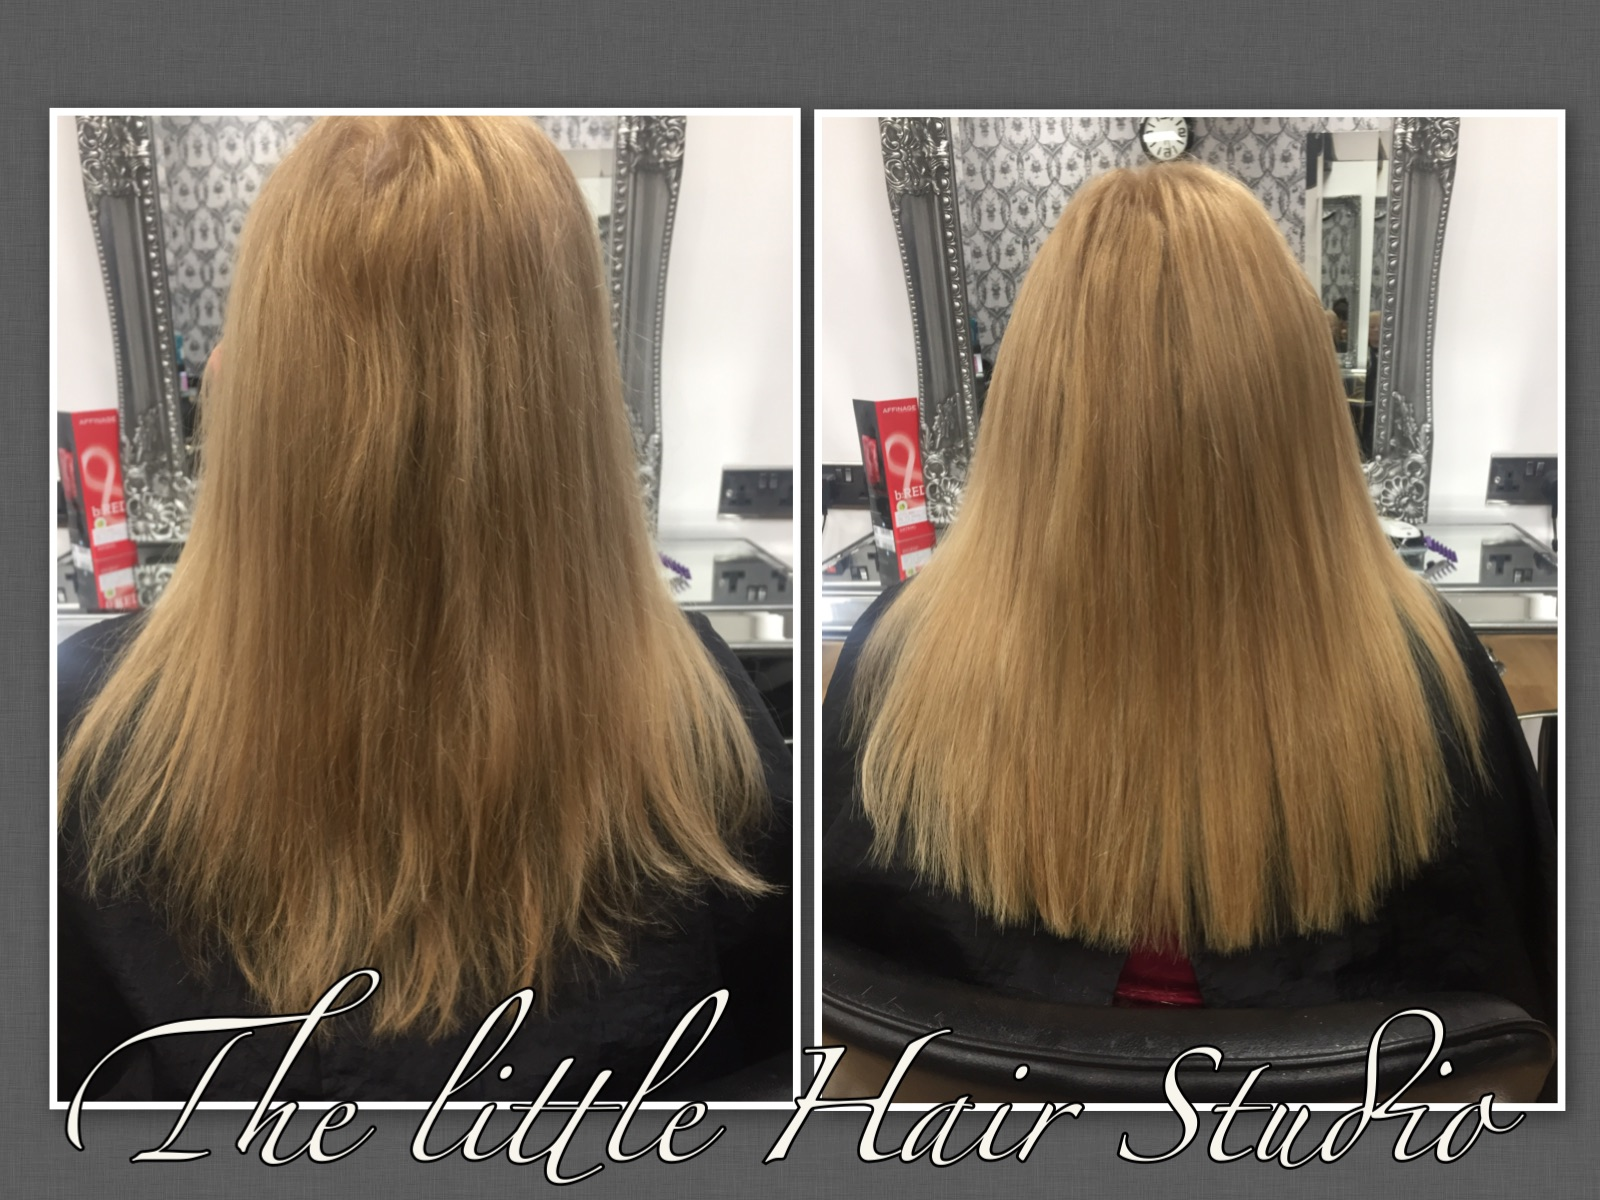 16'' hair extensions